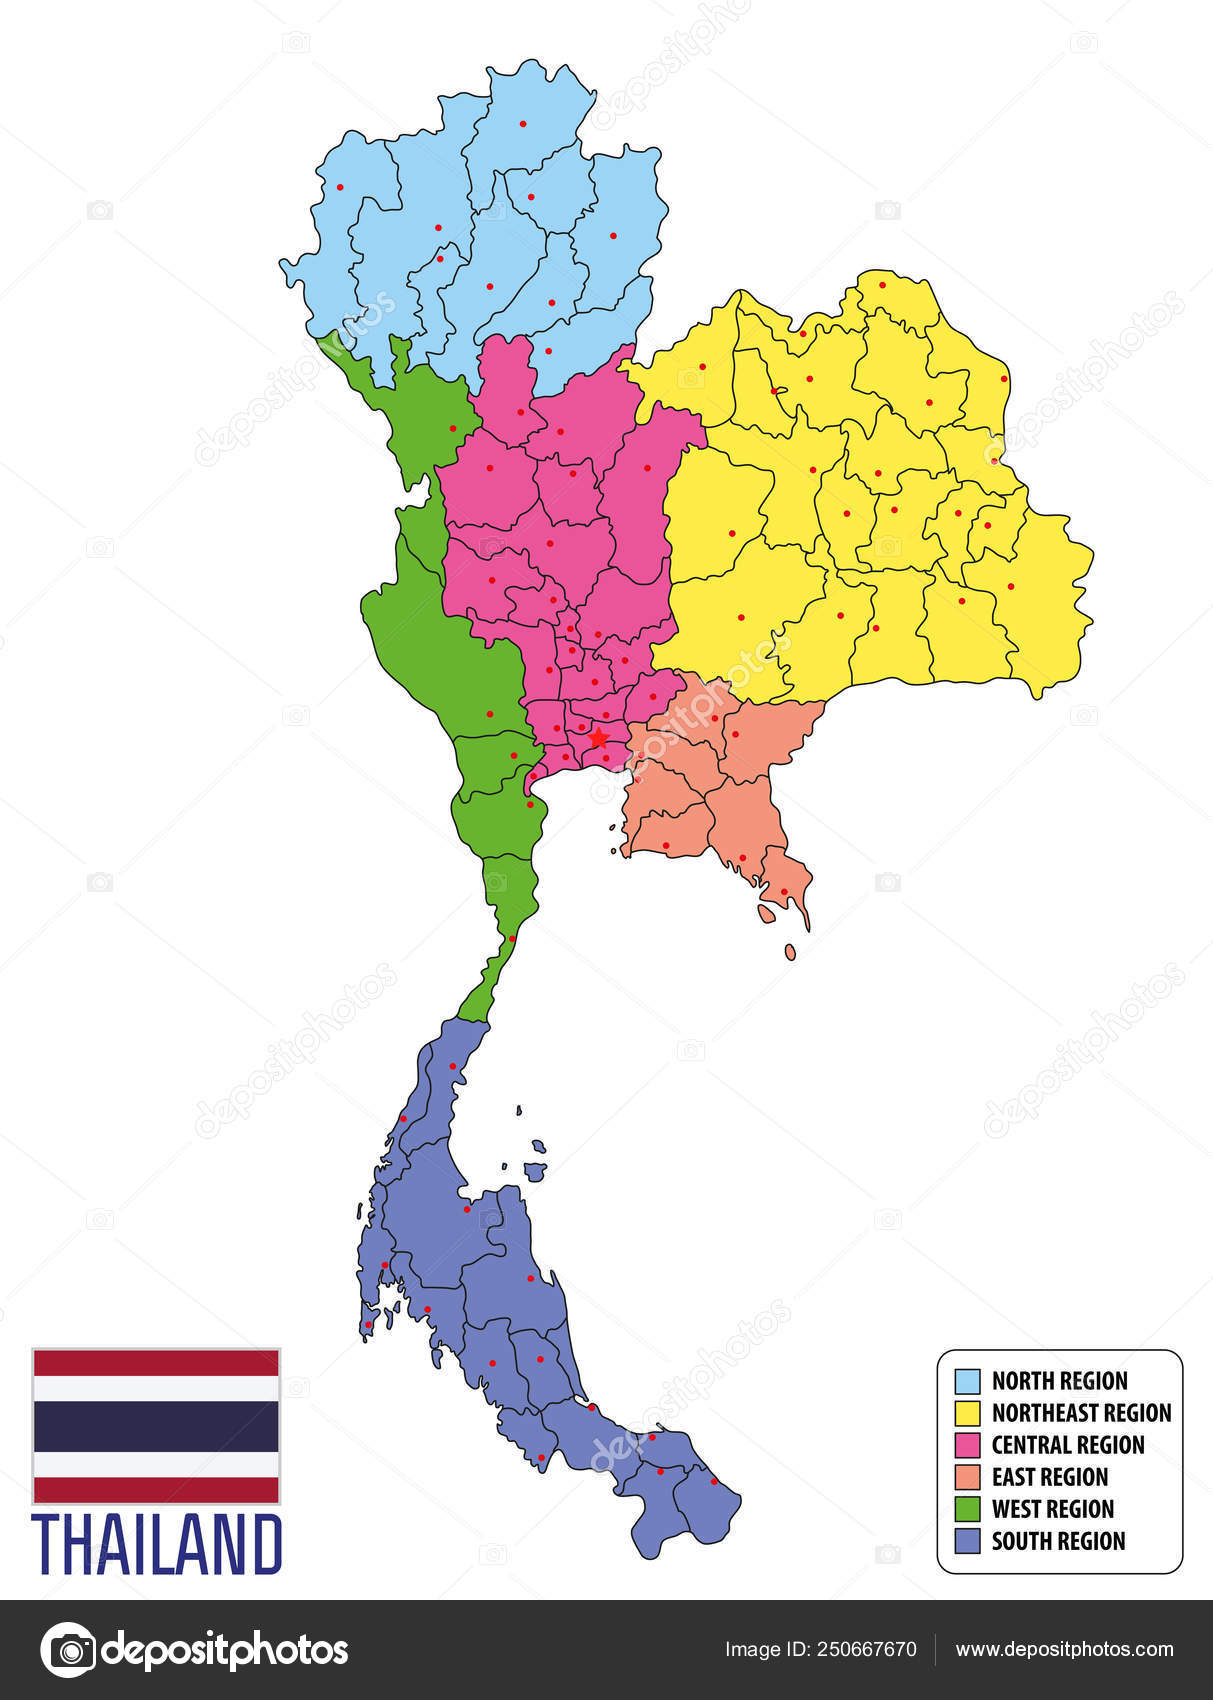 Map of Thailand — Stock Vector © zlatovlaska2008 #250667670 Map For Thailand on map for u.s, map for guadeloupe, map for nepal, map for somalia, map for australia, map for central african republic, map for romania, map for germany, map for palestine, map for cyprus, map for el salvador, map for taiwan, map for bangkok, map for ethiopia, map for lithuania, map for canada, map for east africa, map singapore, map for mozambique, map for korea,